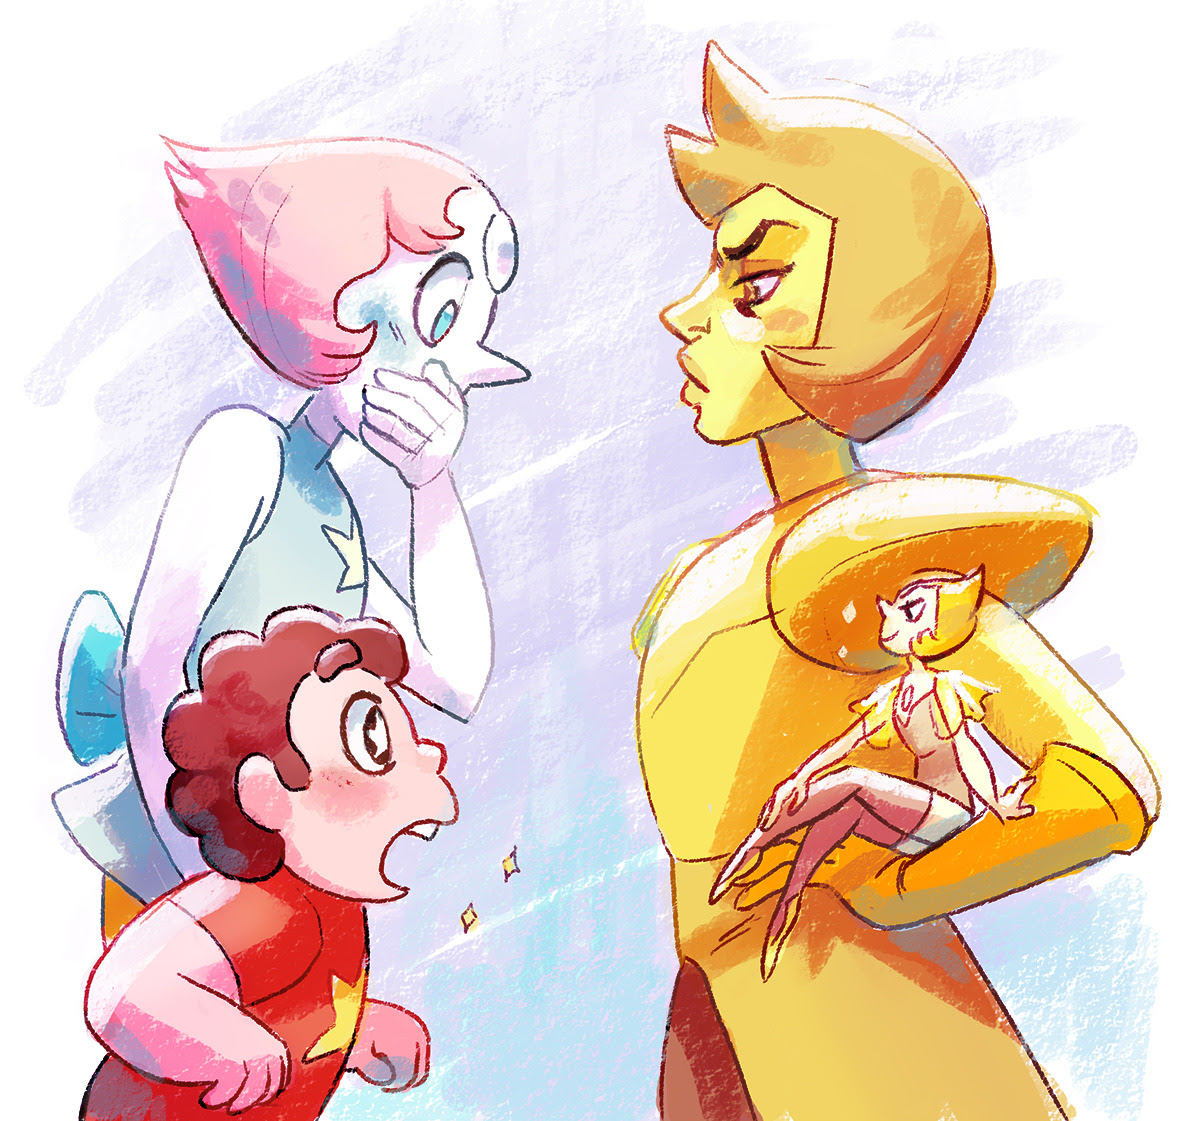 EDGY STEVEN UNIVERSE THEORY: Yellow diamond is not huge. Yellow Pearl is just really, really tiny. (@twilightdragoness)